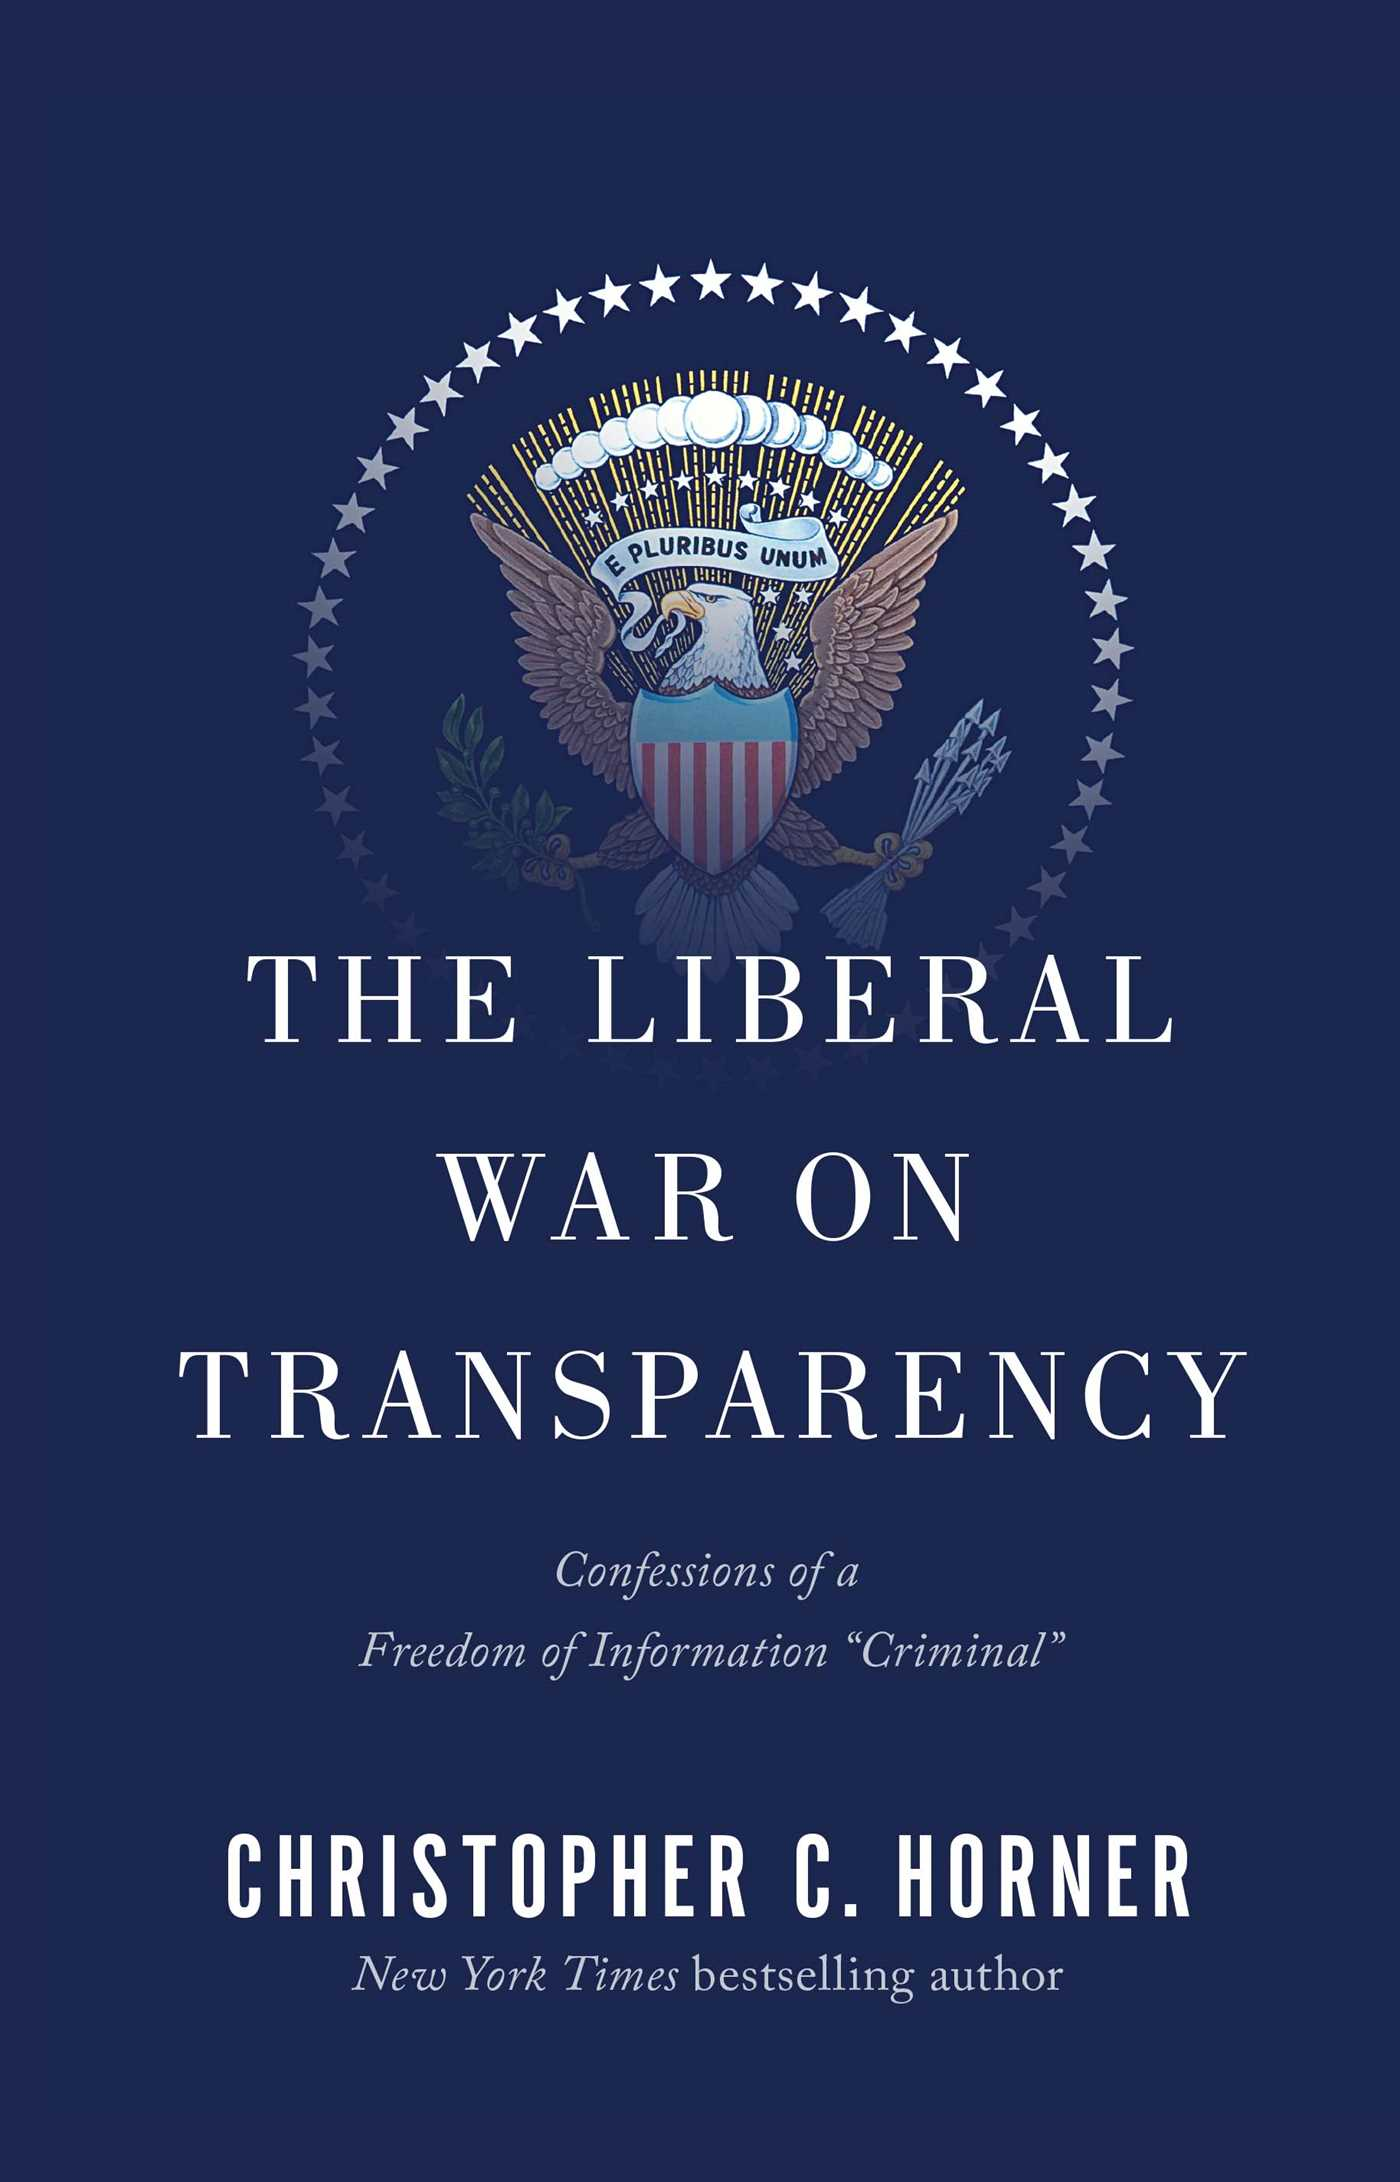 The liberal war on transparency 9781451694901 hr